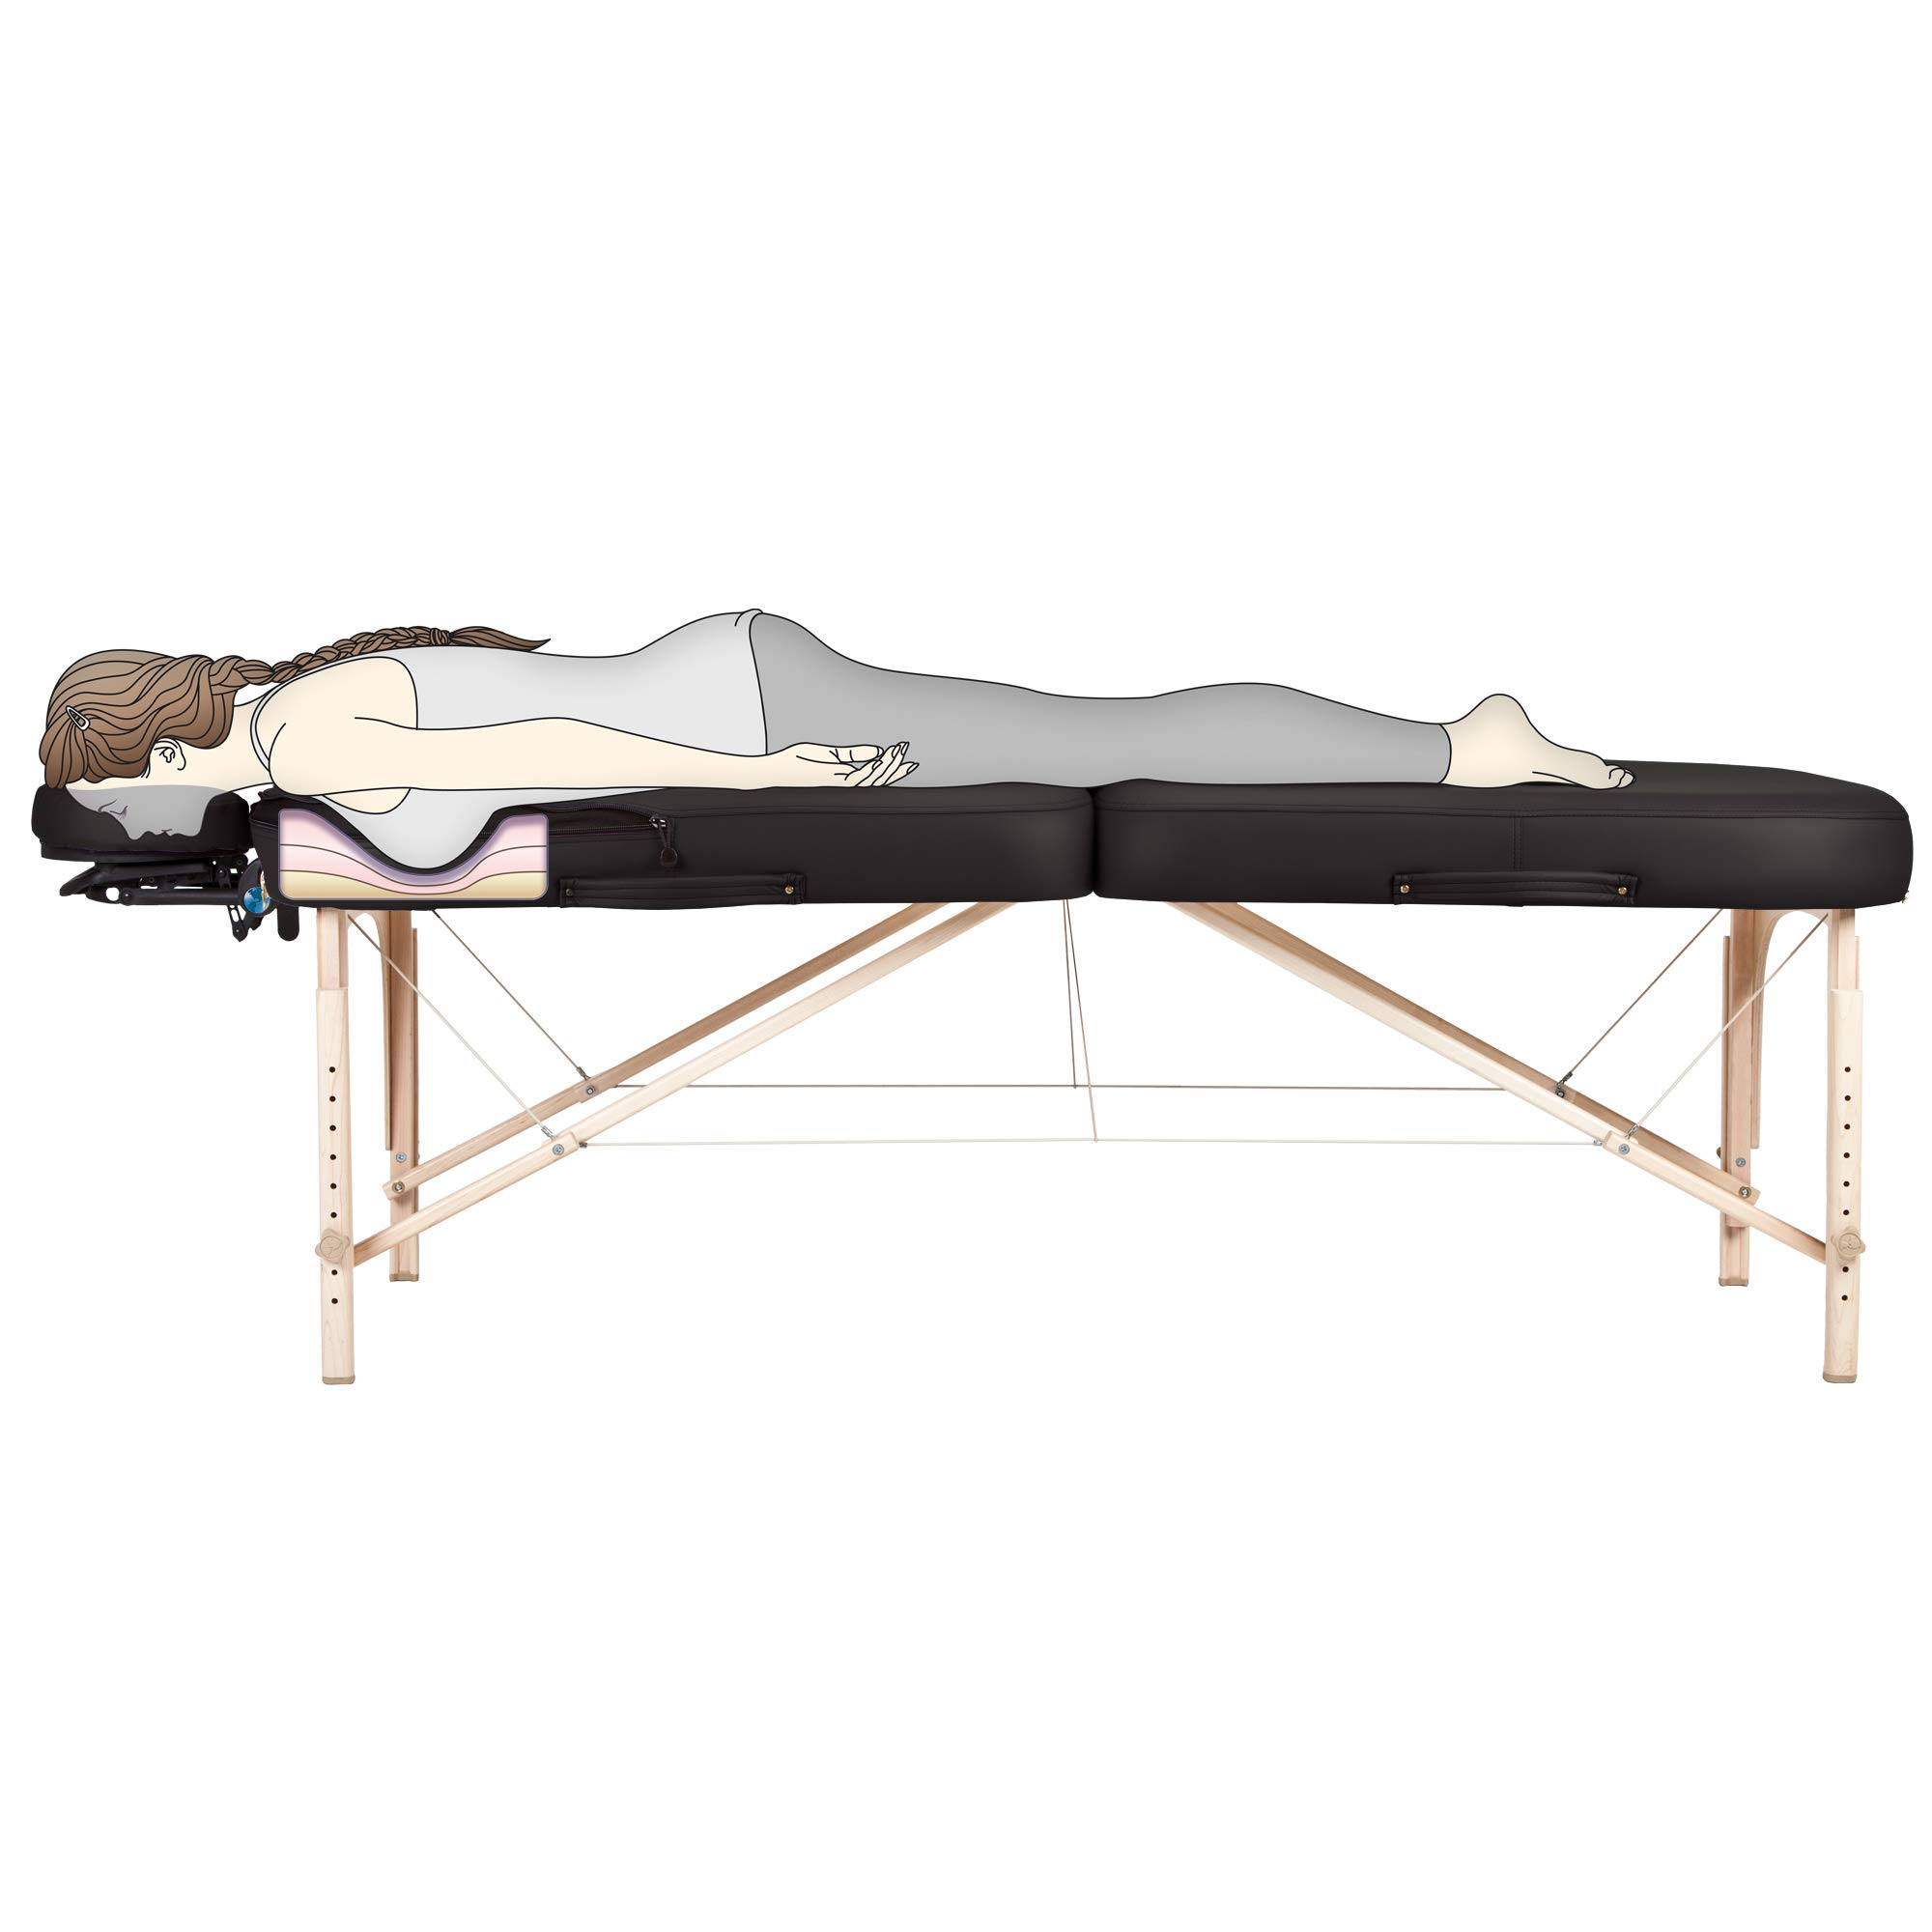 """EARTHLITE Portable Massage Table INFINITY CONFORMA with Breast Technology – Memory Foam Alcoves in Stomach & Chest Area, 3"""" Pro-Plush Deluxe Cushioning, Flex-Rest Face Cradle, Carry Case (Full Reiki)"""